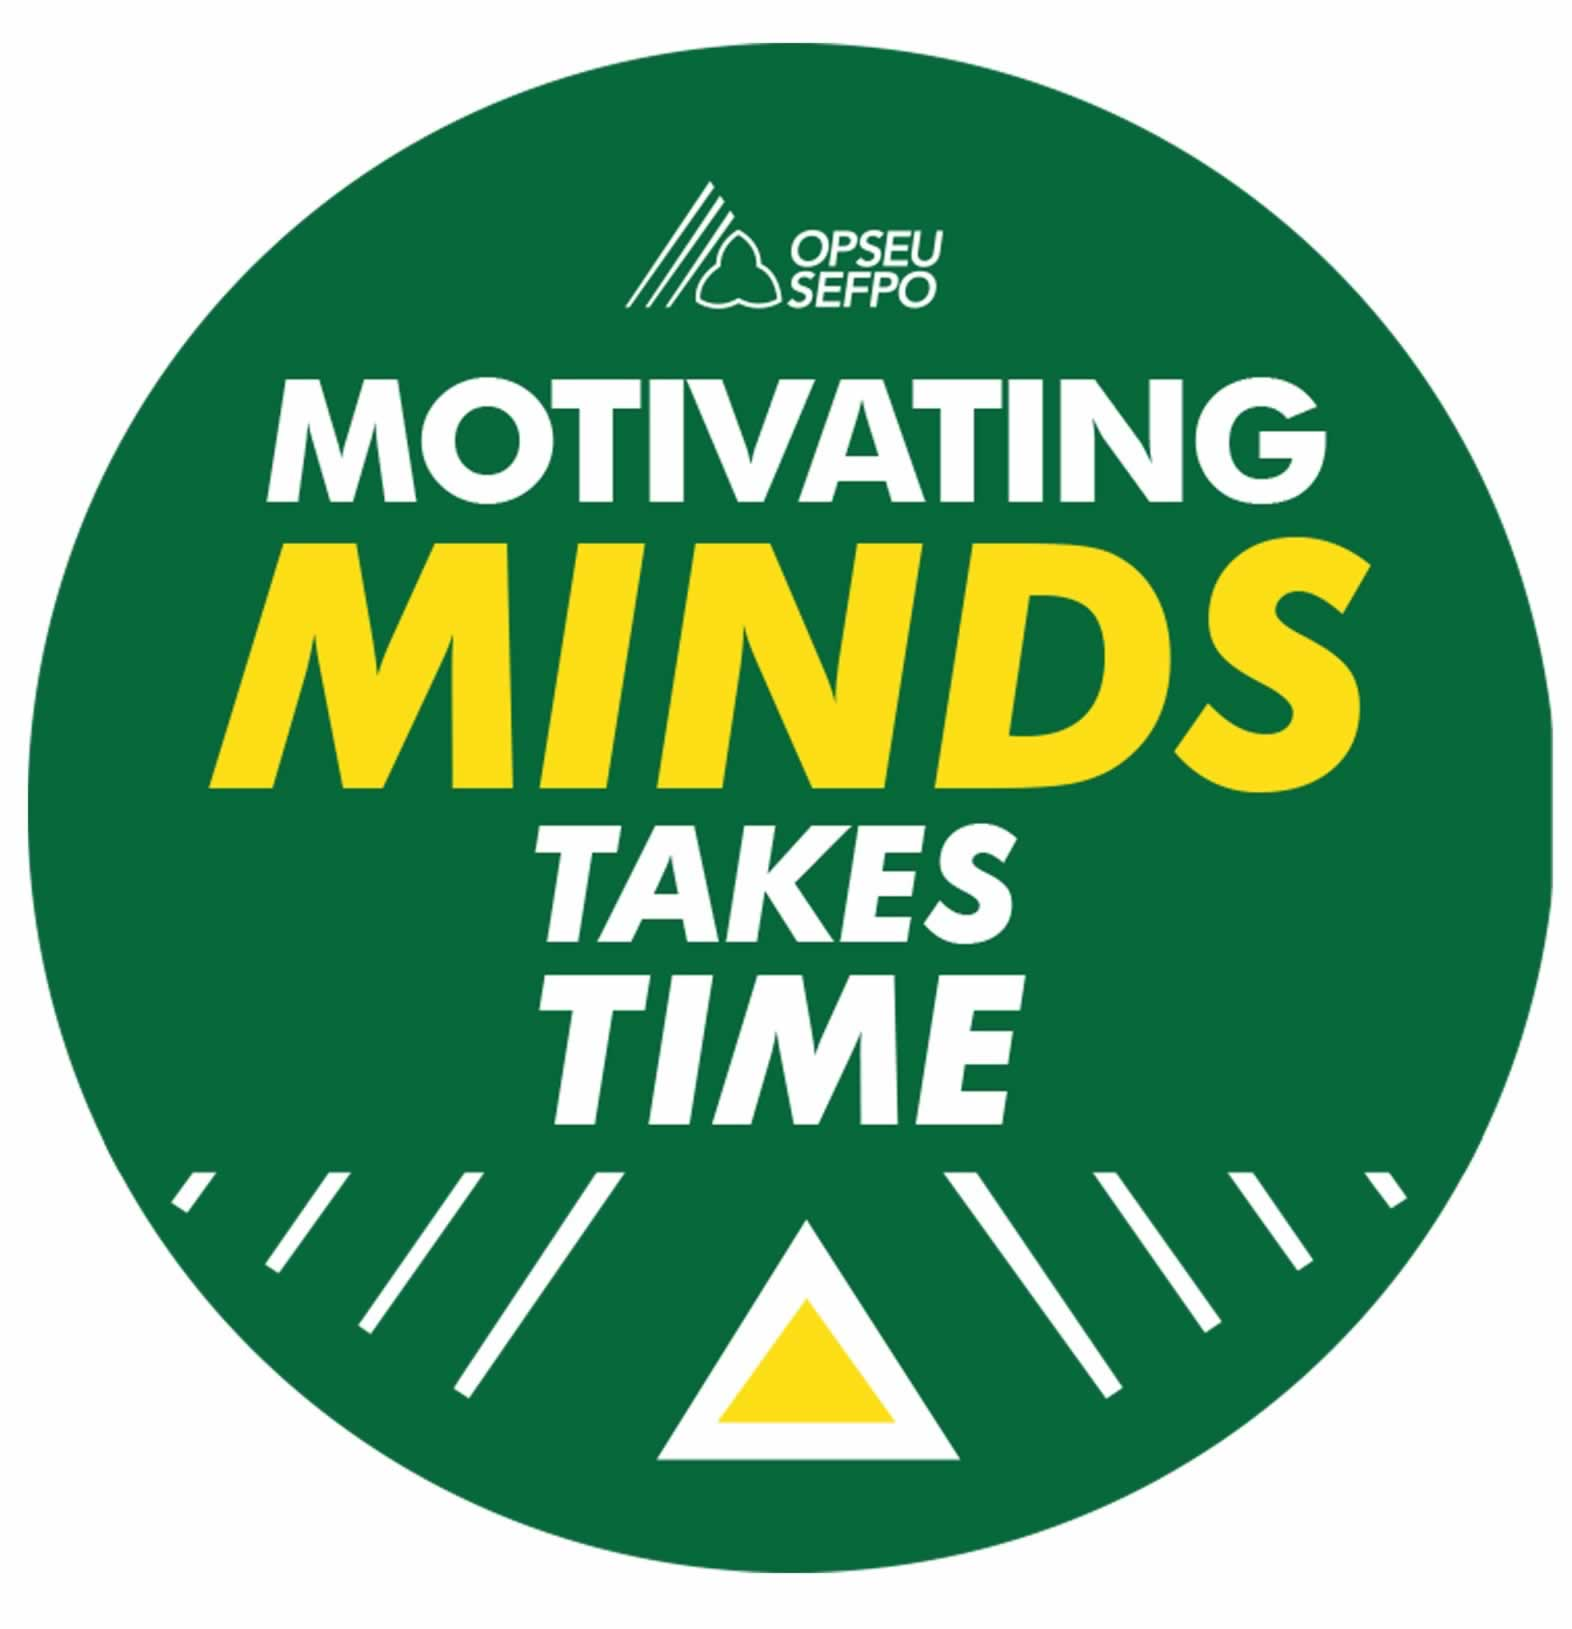 OPSEU - Motivating Minds Takes Time